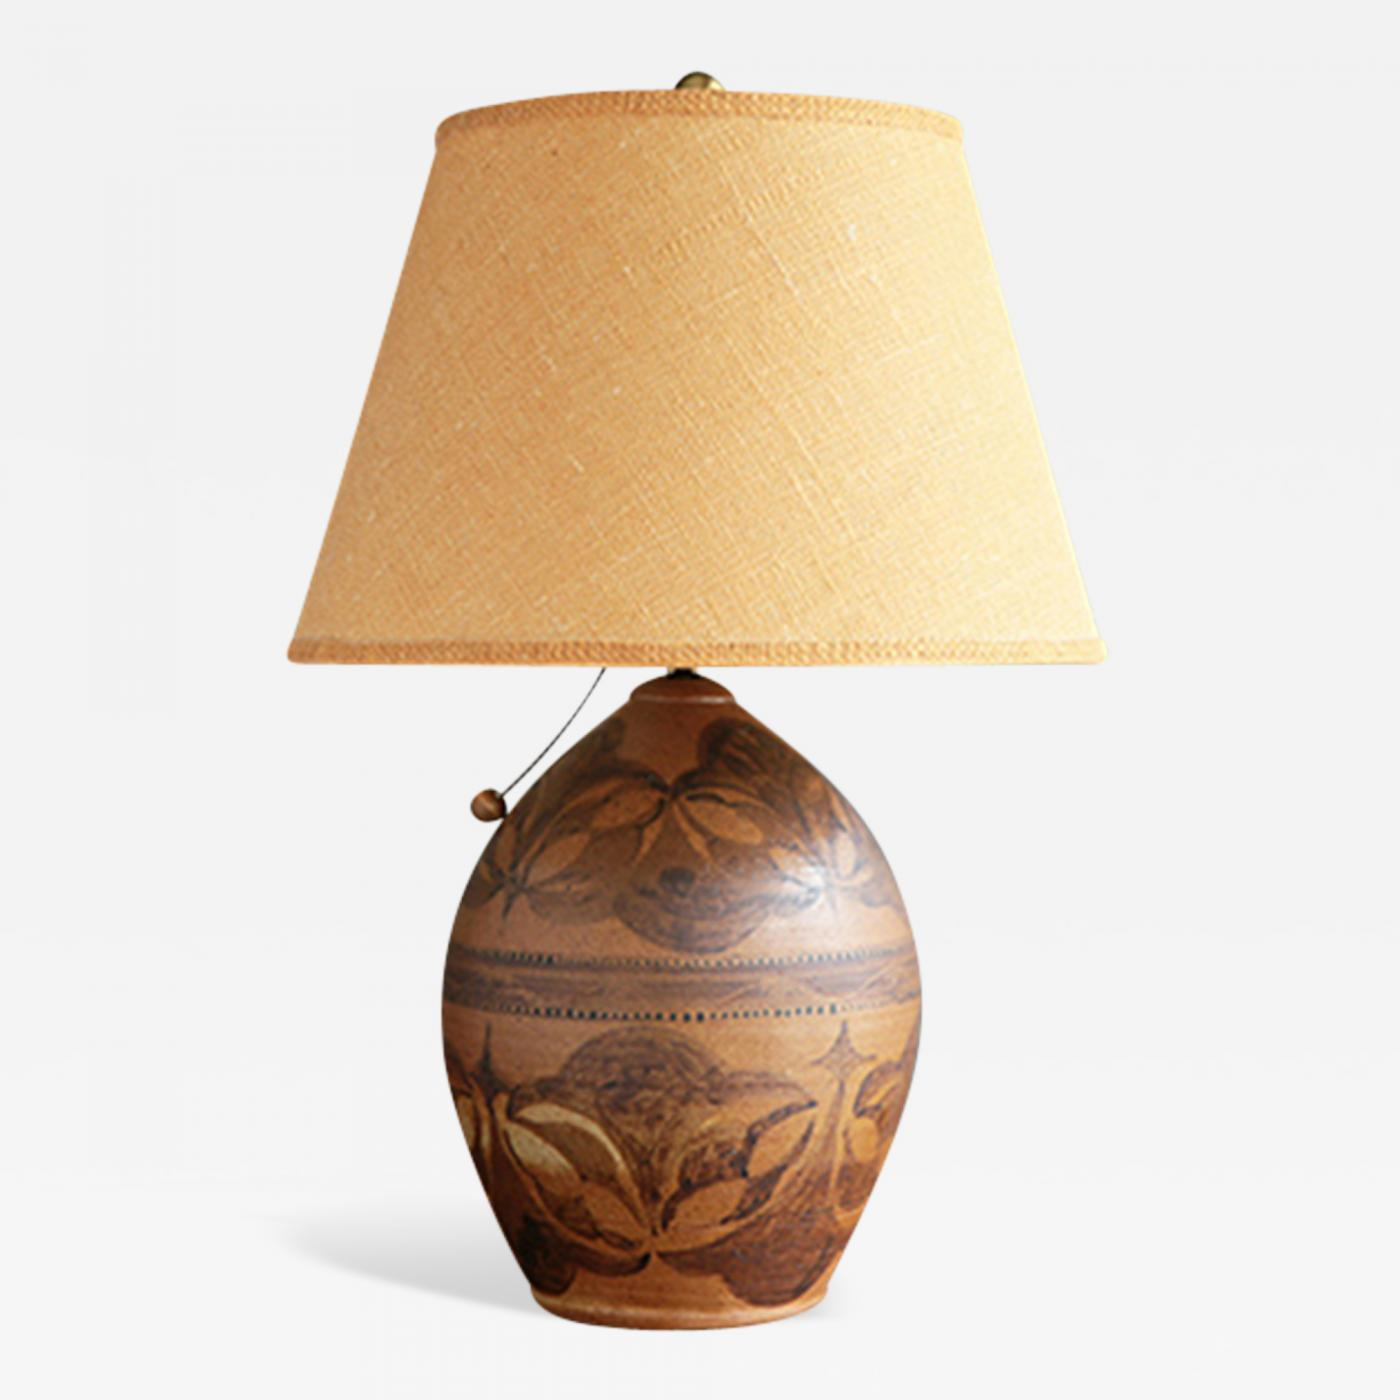 Listings / Furniture / Lighting / Table Lamps · Arts Crafts ...